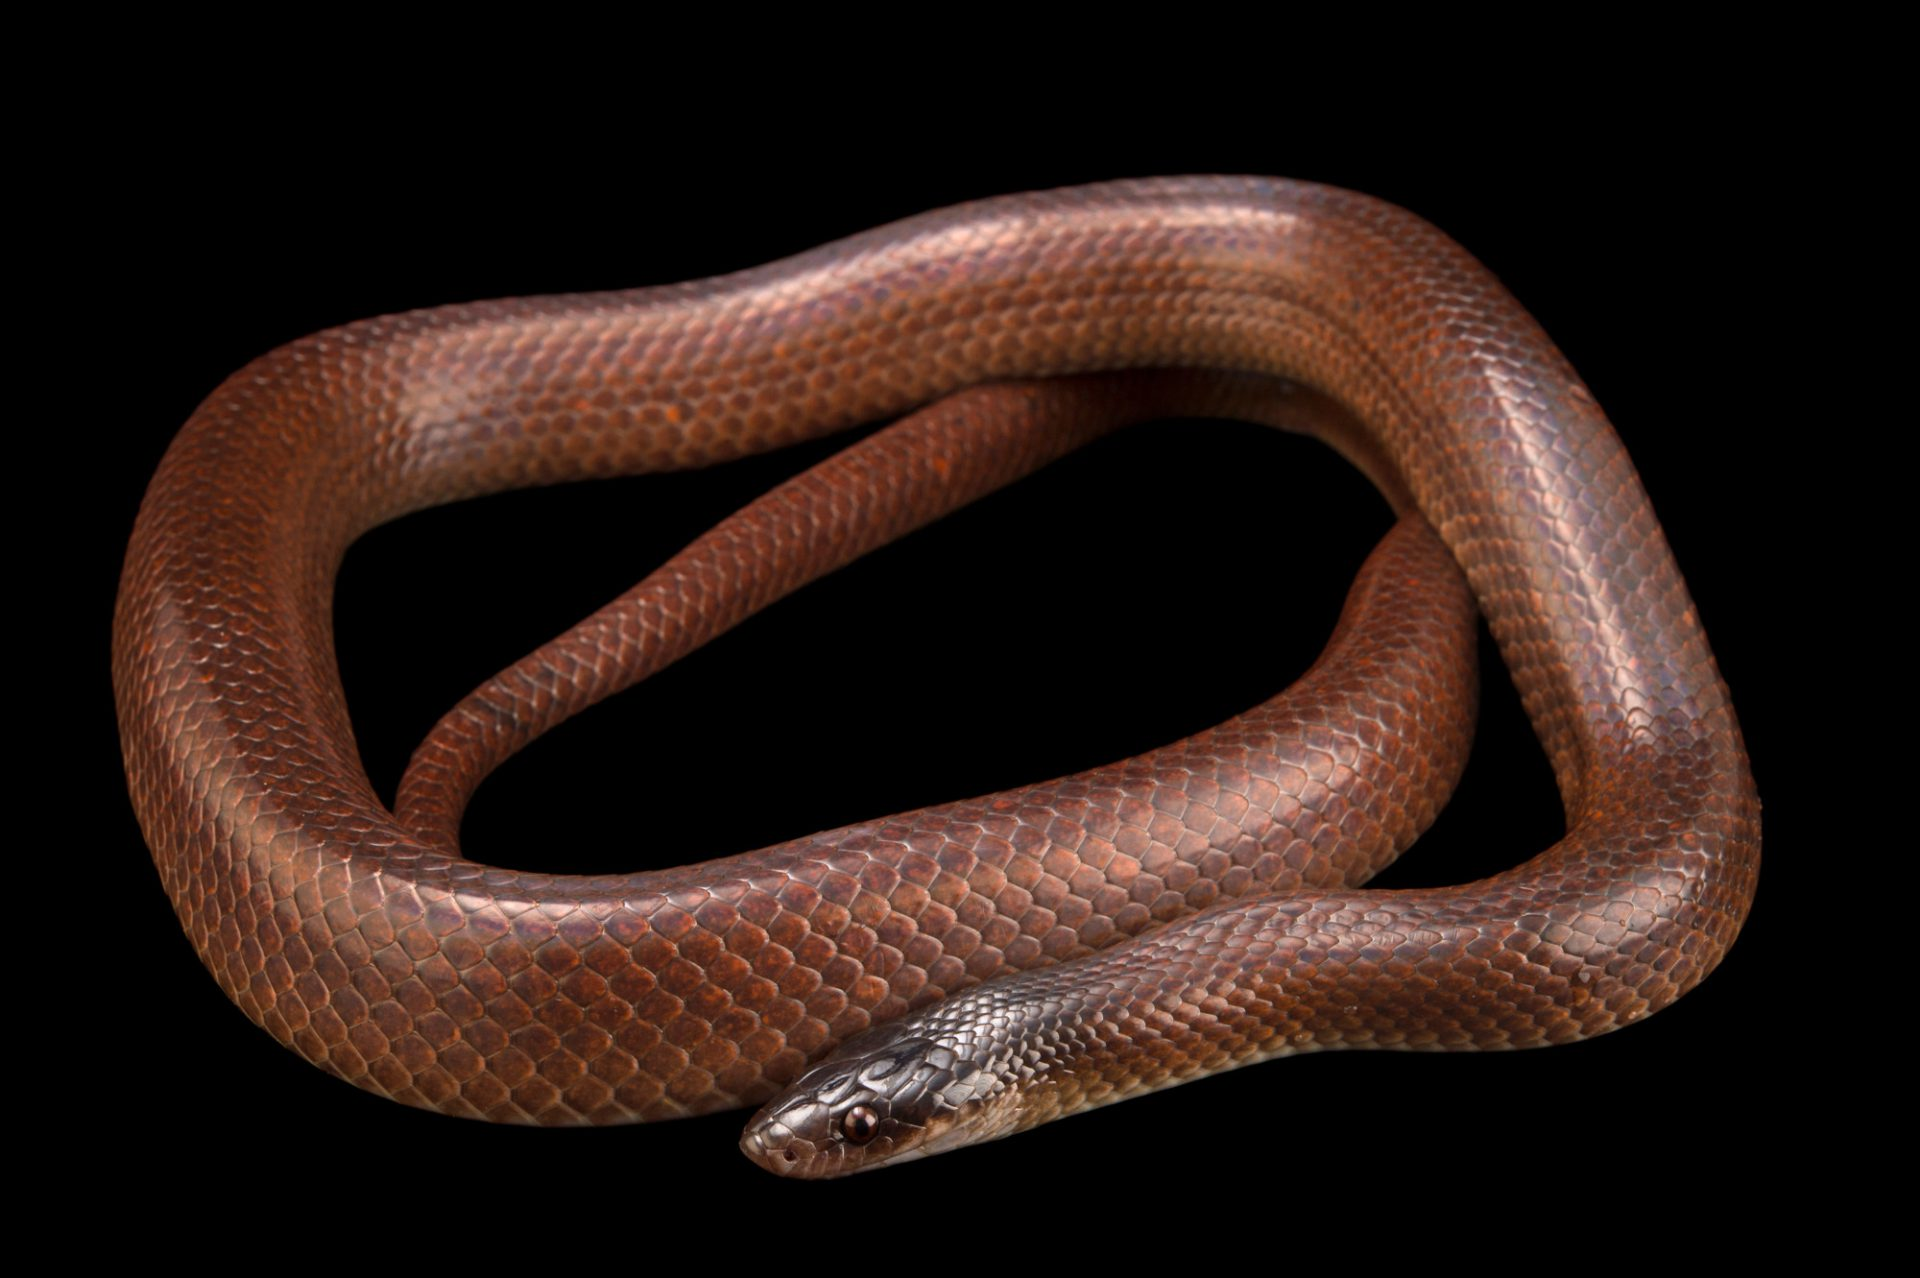 Photo: Ratonel (Pseudoboa neuwiedii) at Piscilago Zoo in Bogota, Colombia.